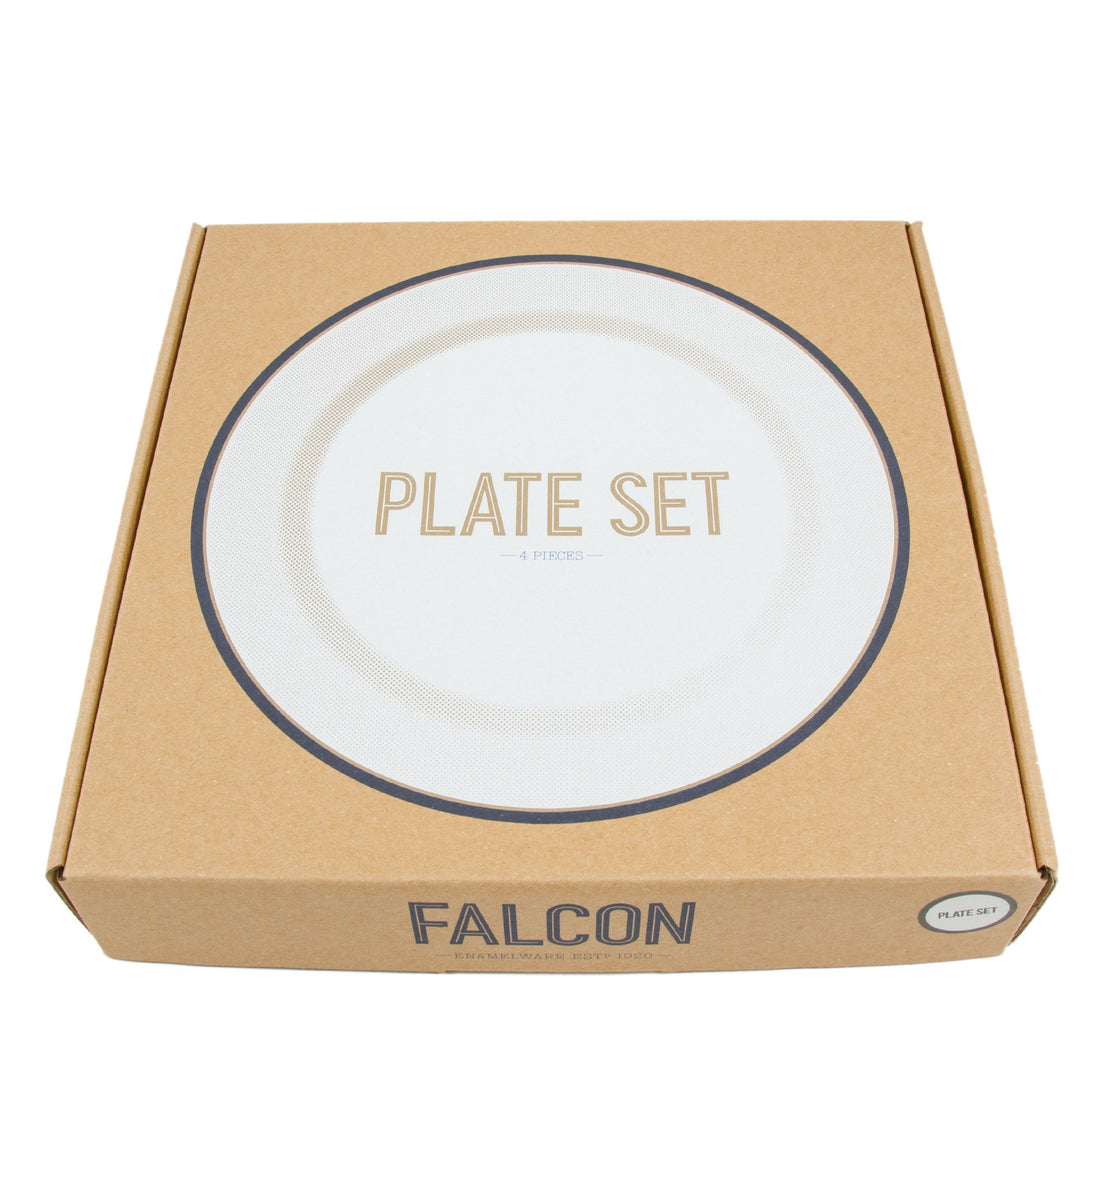 Falcon Enamelware- Plate Set - Kitchenware - Iron and Resin